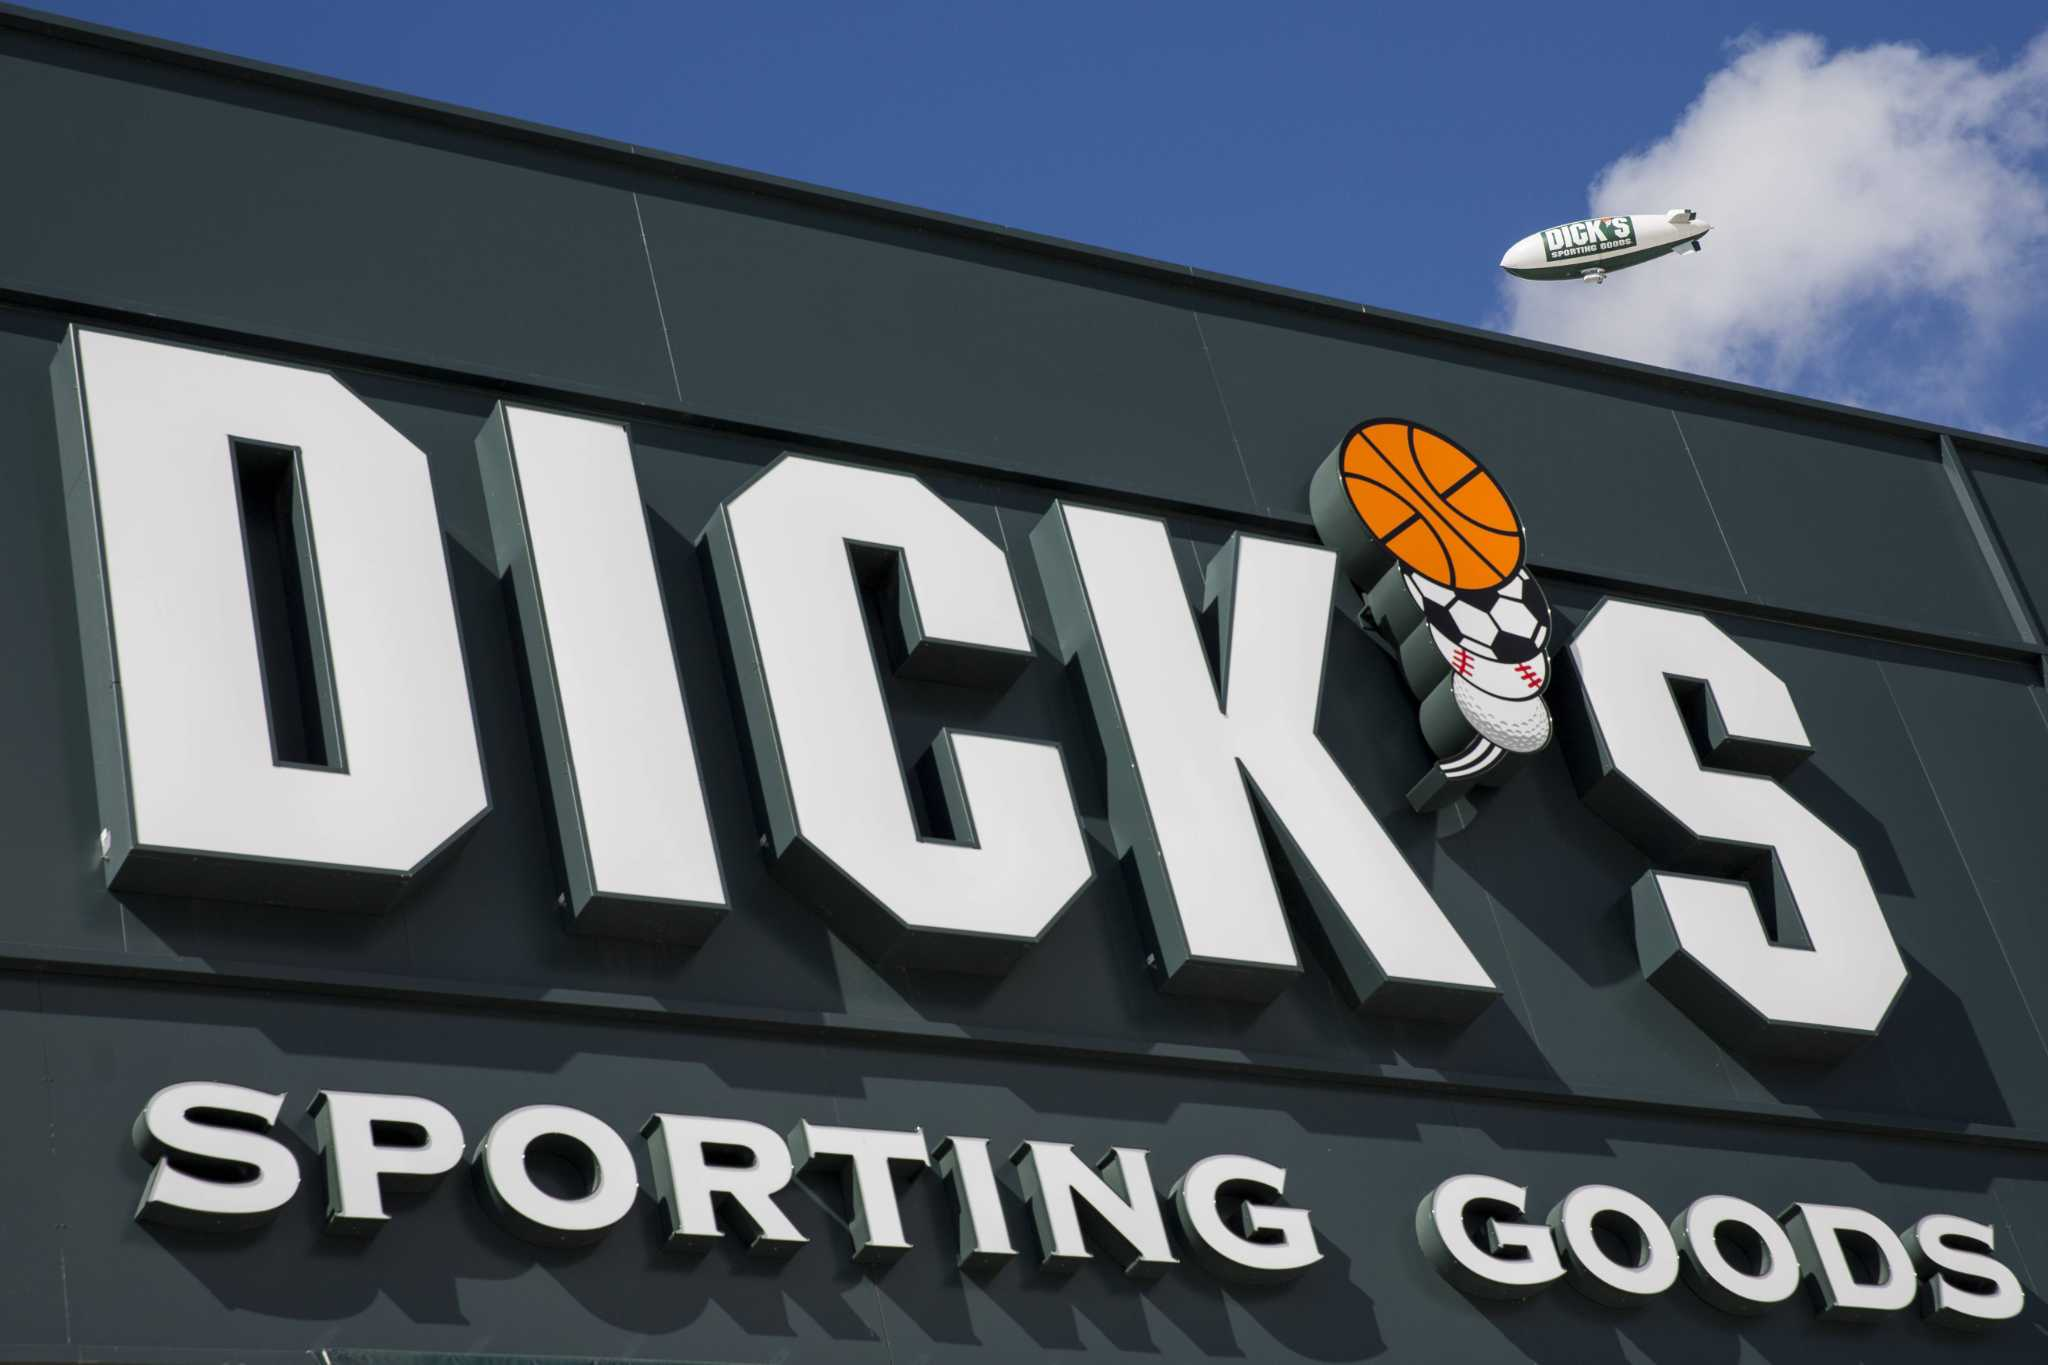 Dicks sporting goods to remove guns, hunt department